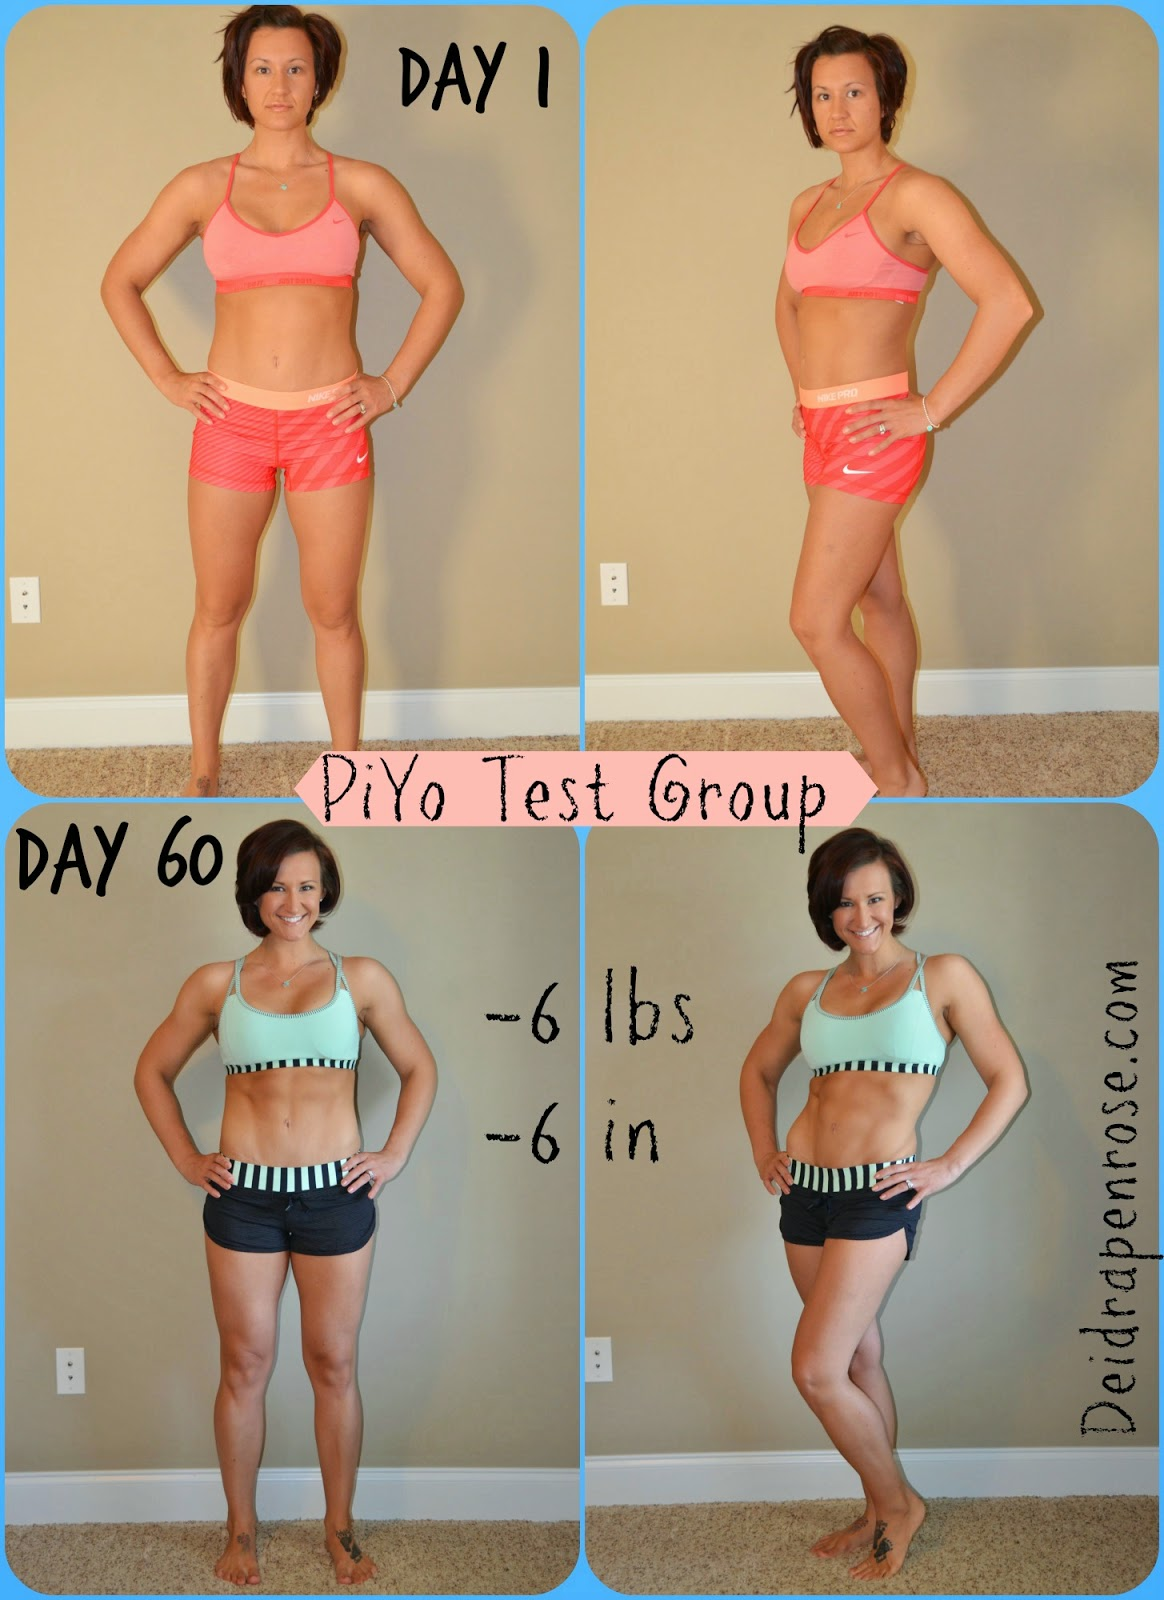 Deidra Penrose: PiYo Results- Beachbody Test Group